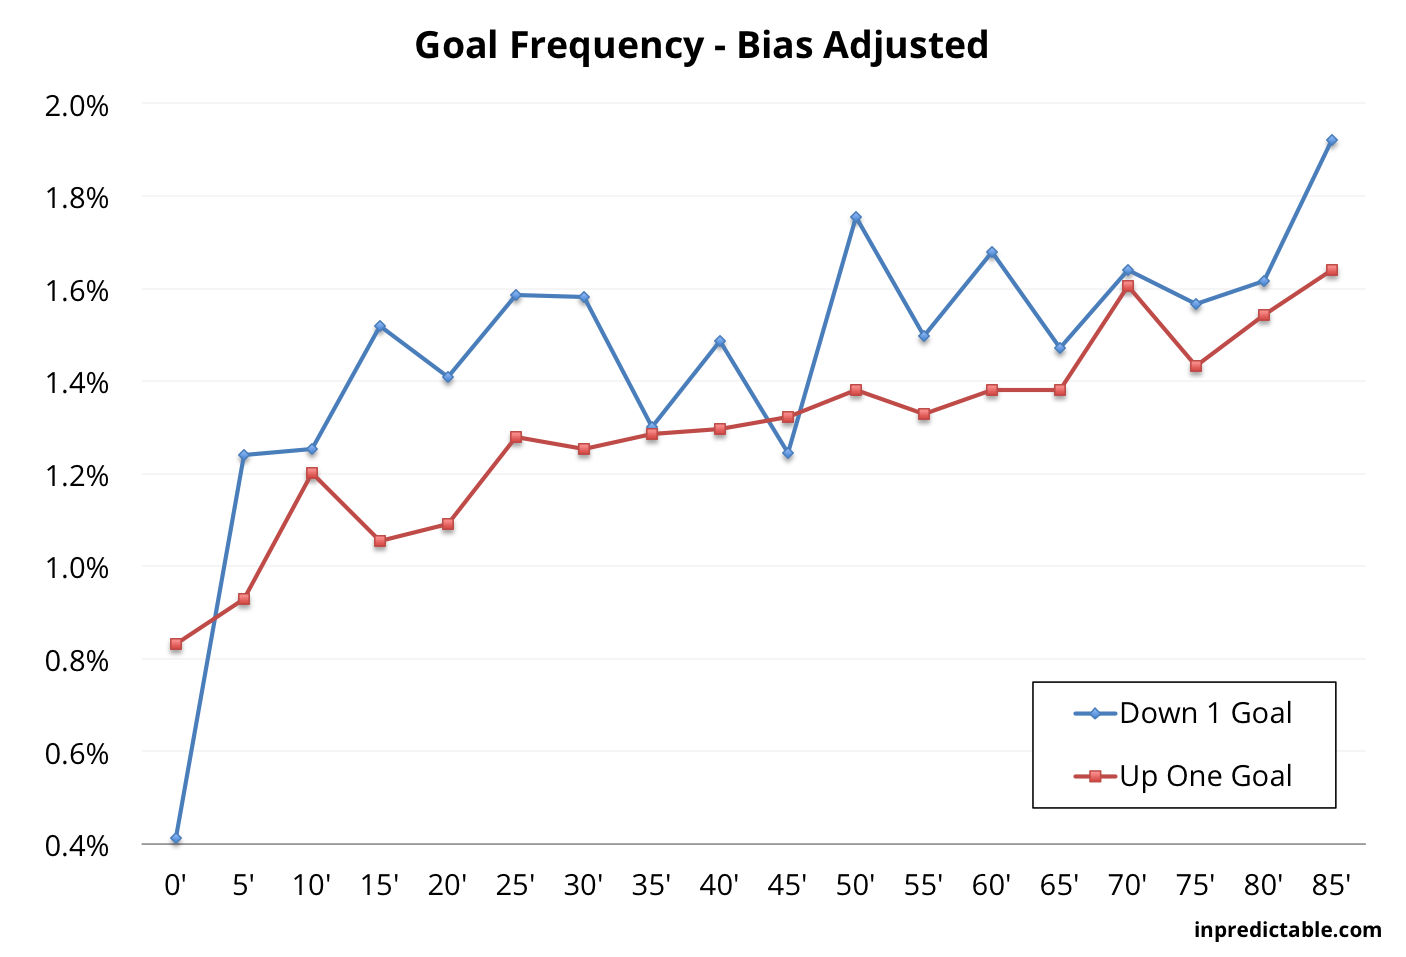 inpredictable: How to improve your chances of scoring a goal in soccer? Concede one first.